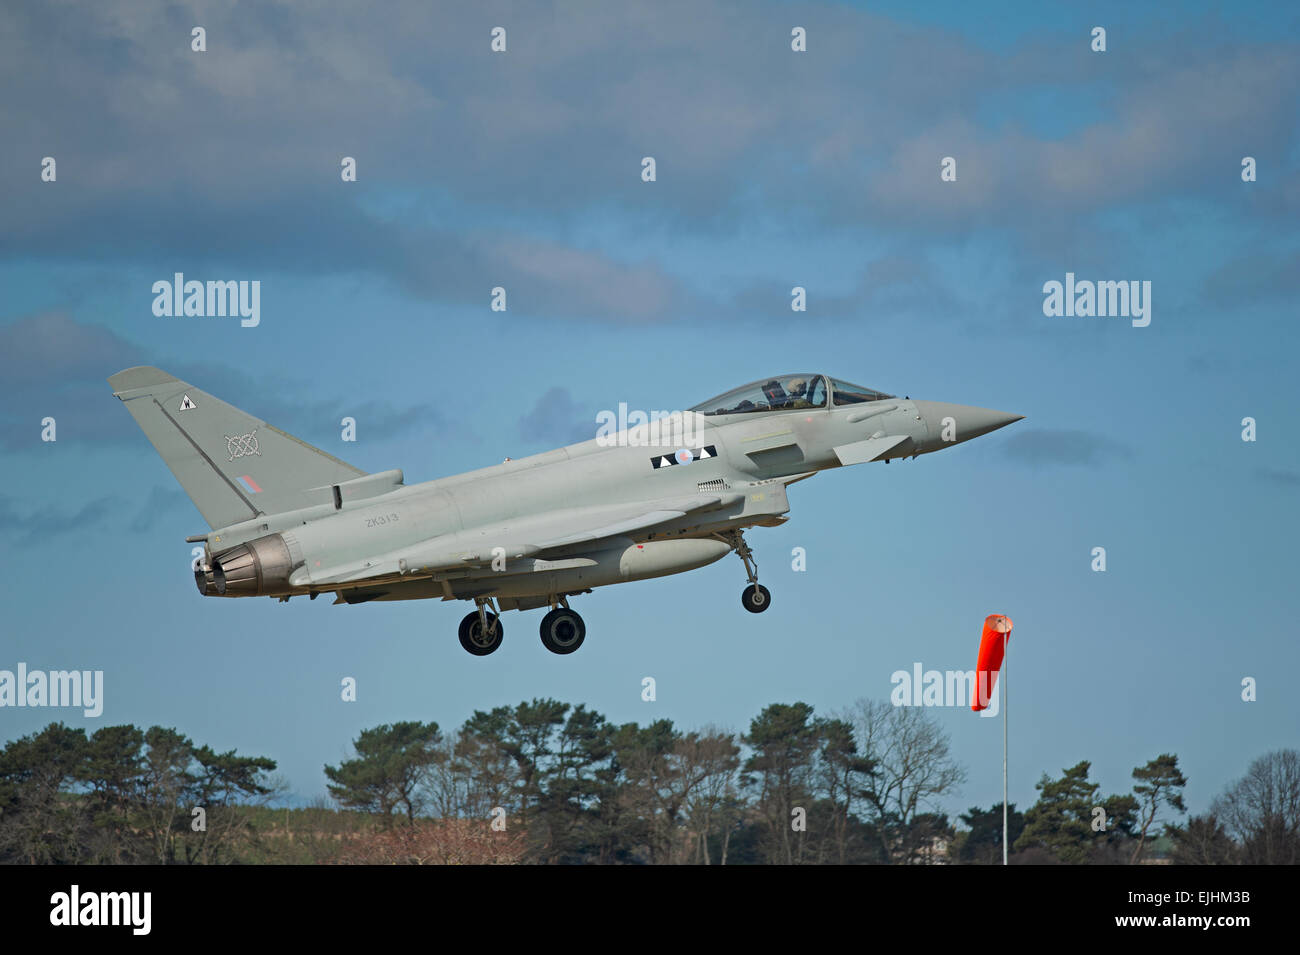 Eurofighter Typhoon ZK313 about to land at RAF Lossiemouth Air Base, Morayshire. Scotland.  SCO 9668. - Stock Image